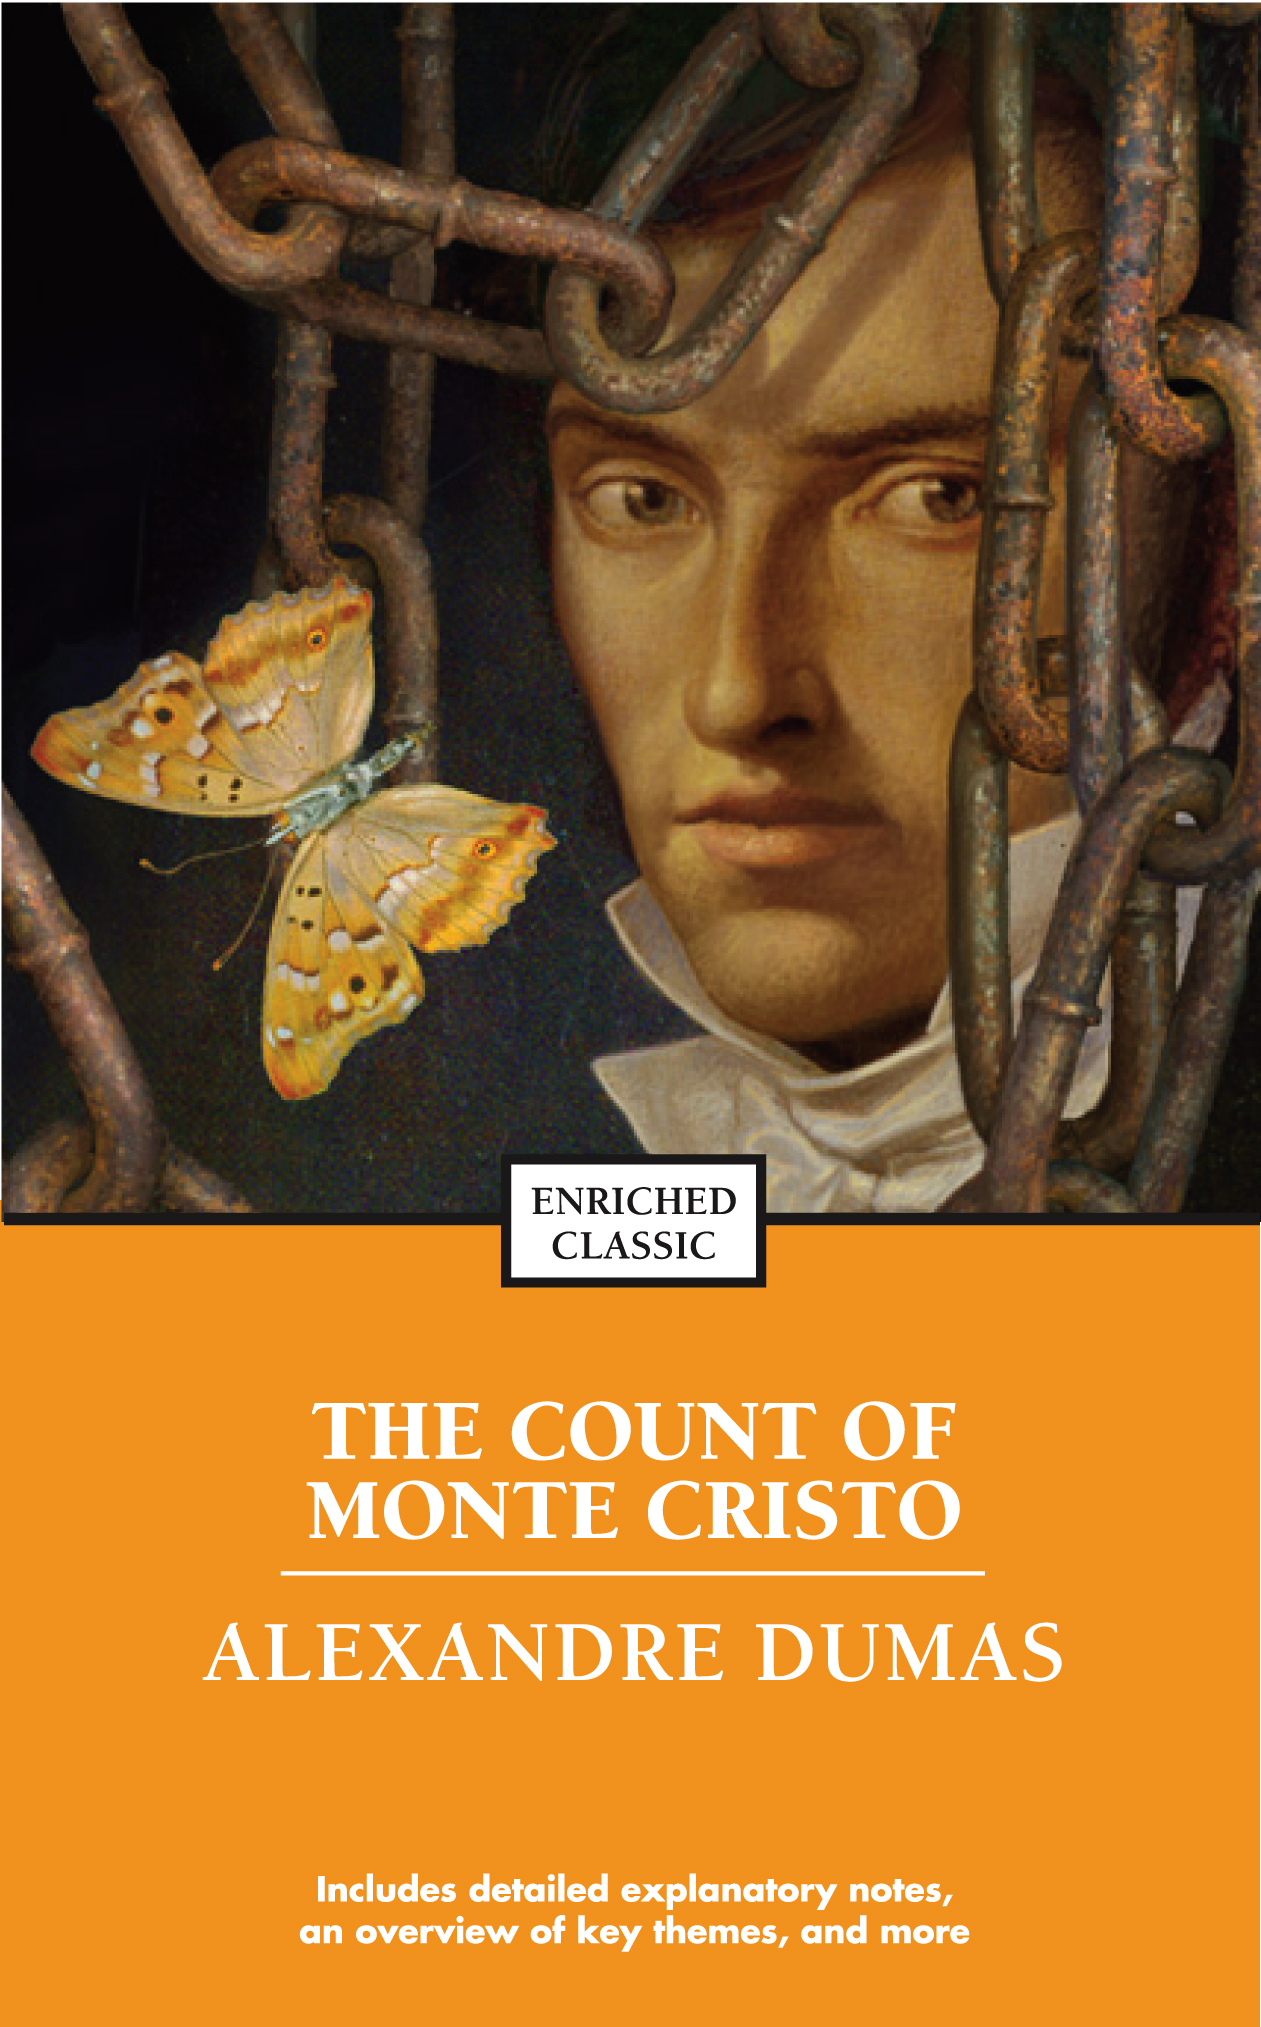 the count of monte cristo book by alexandre dumas official  cvr9780743487559 9780743487559 hr the count of monte cristo